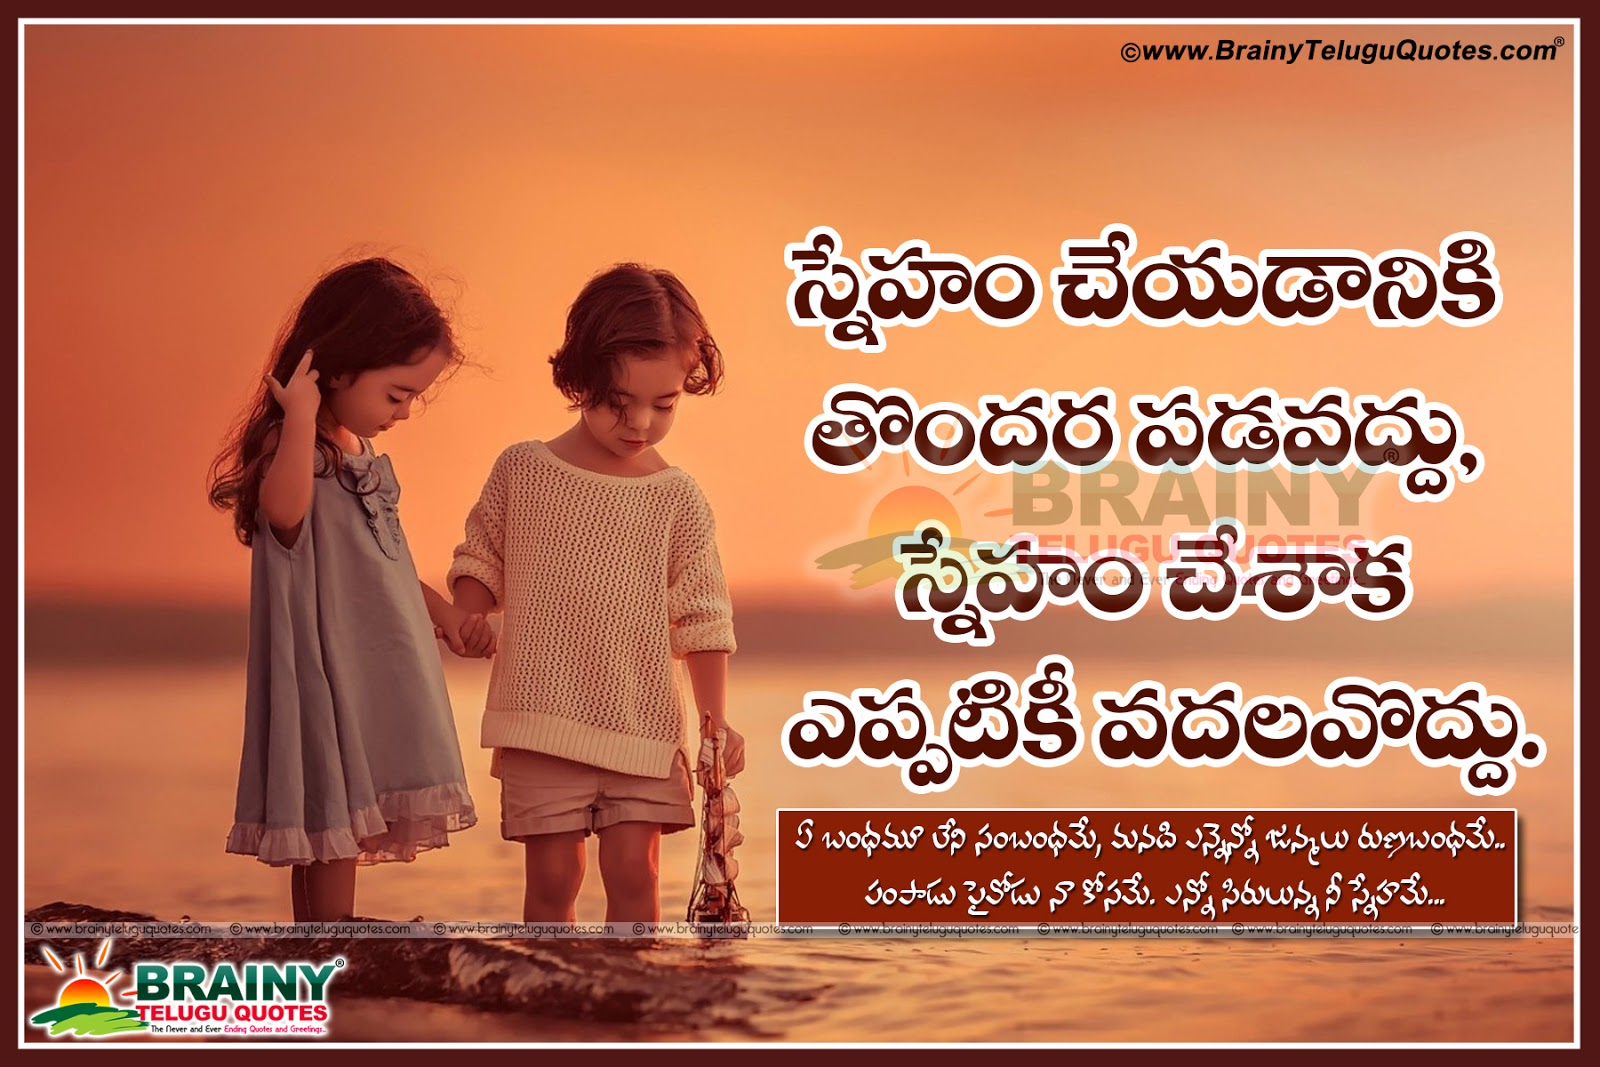 Telugu Comedy Wallpapers With Quotes: Beautiful Telugu Friendship Messages With Pictures